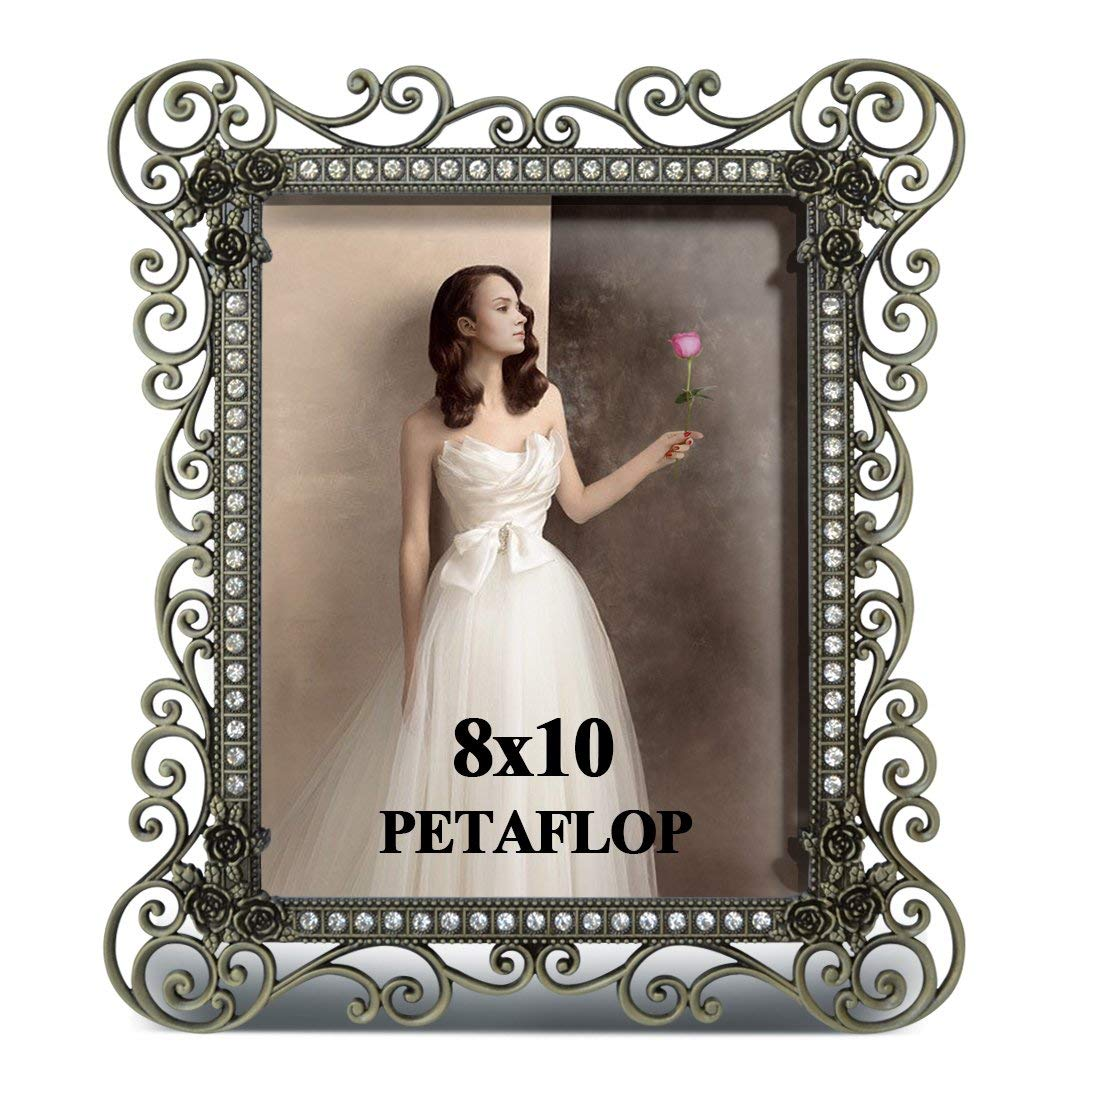 PETAFLOP 8x10 Vintage Picture Frame Hollow up Metal Frames for 8 by10 inch Photo